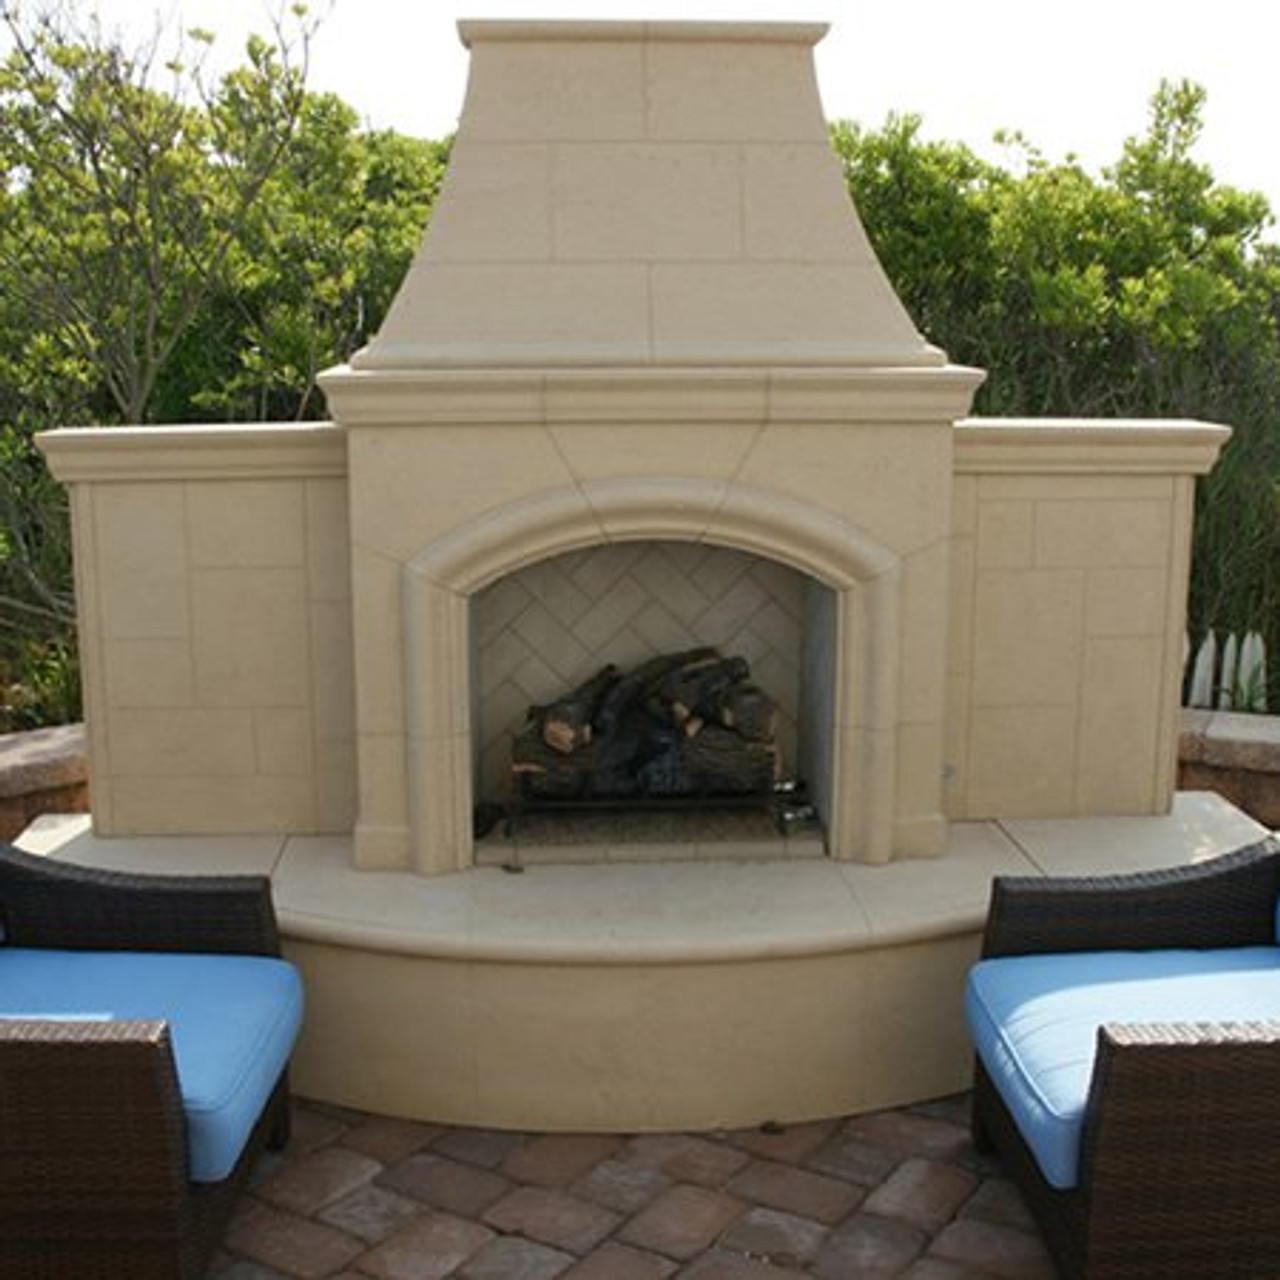 Outdoor Fireplace American Fyre Grand Phoenix